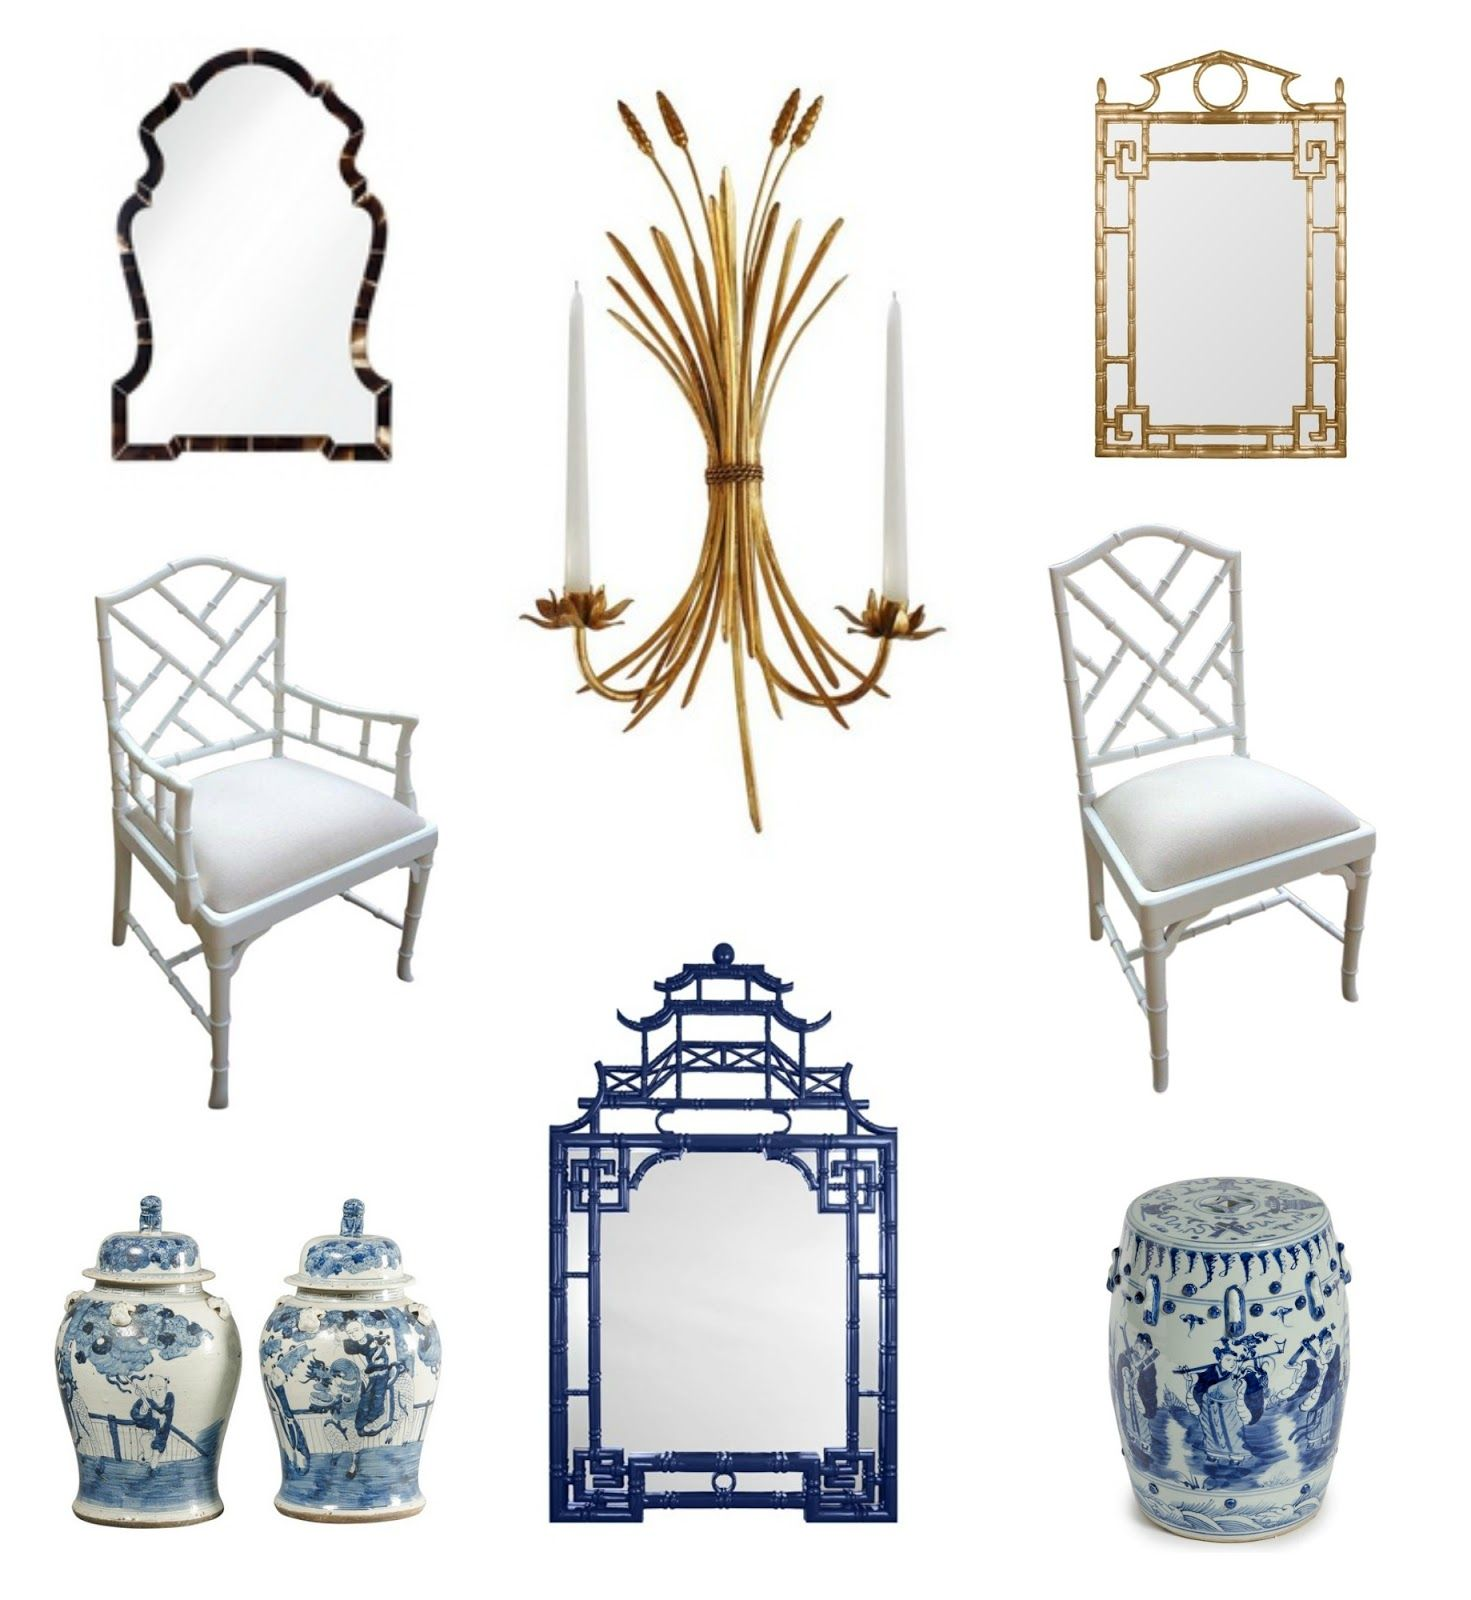 The Top Ten Chinoiserie Trends for 2014